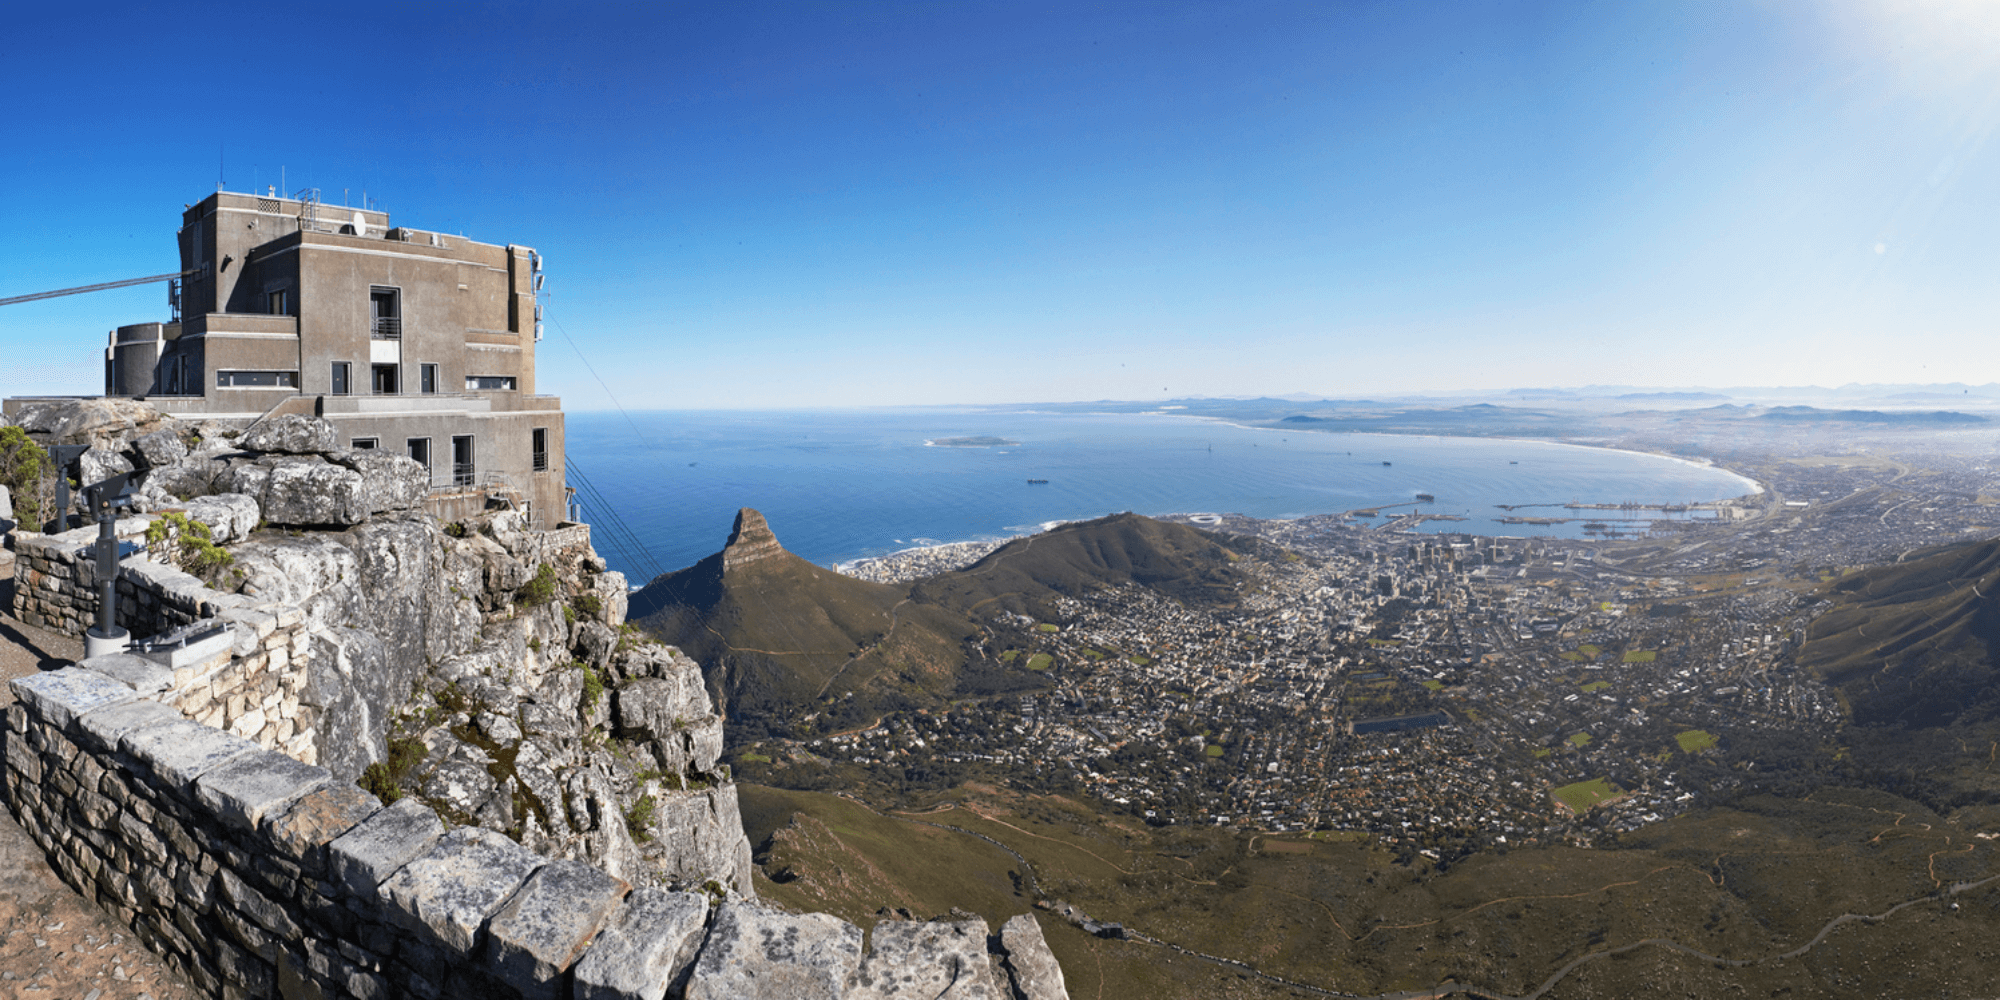 7SeptemberThe view from Table Mountain